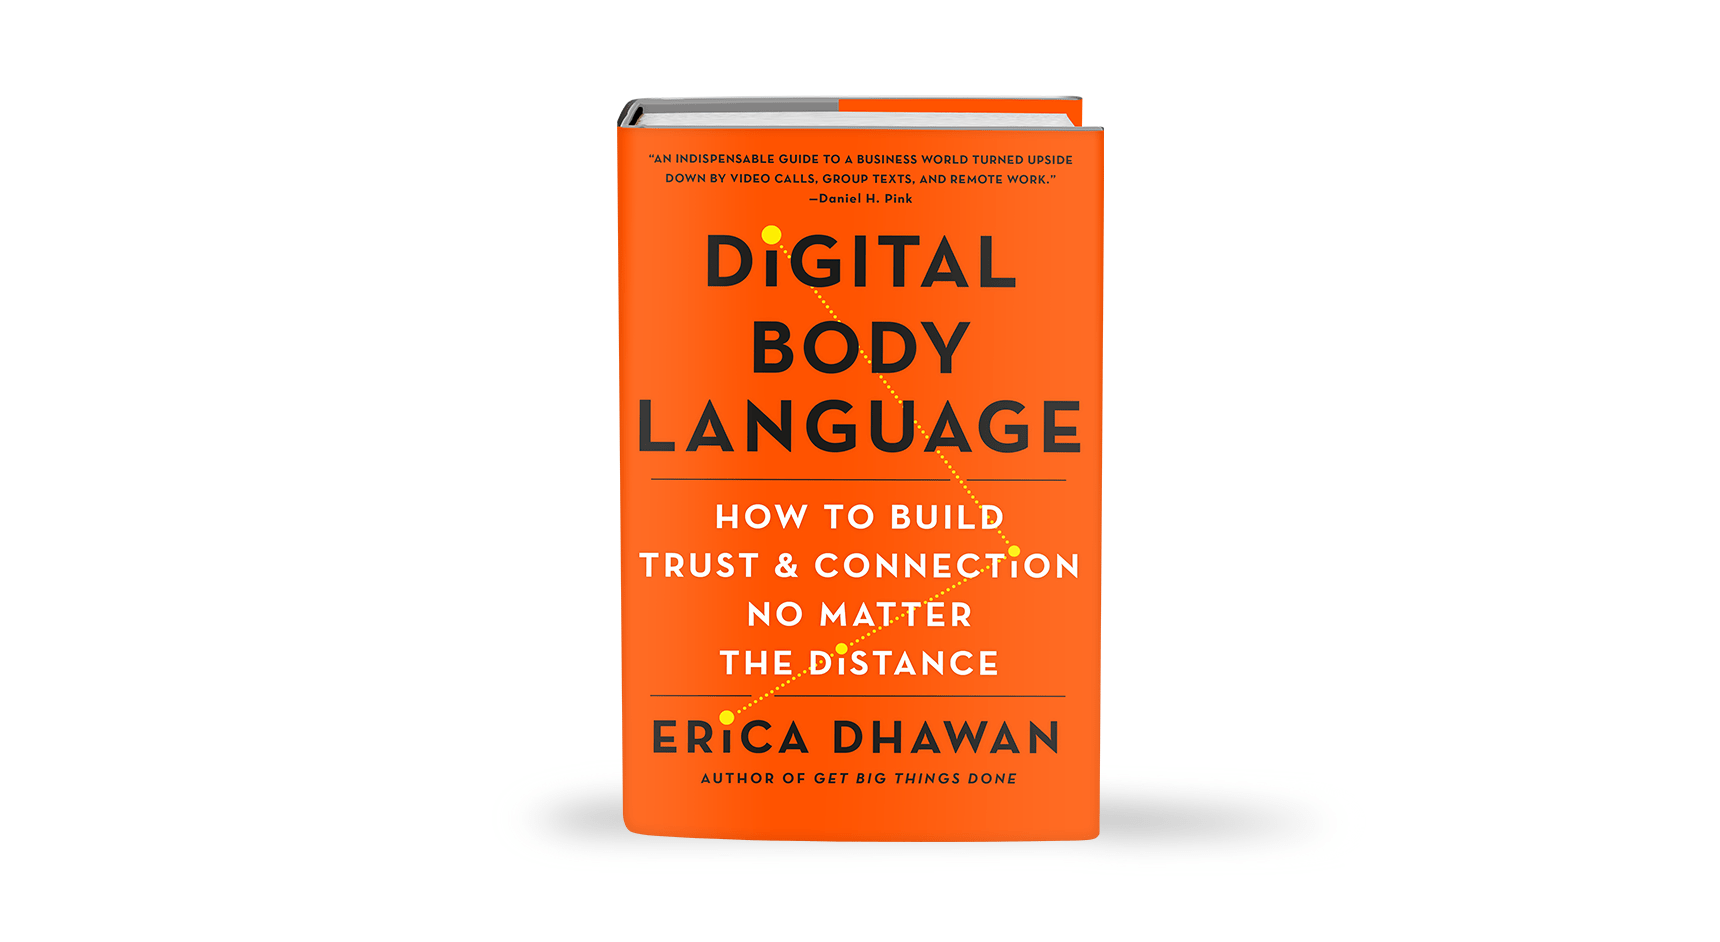 Vibrant orange cover of a book, Digital Body Language, offering tips on conducting remote interviews